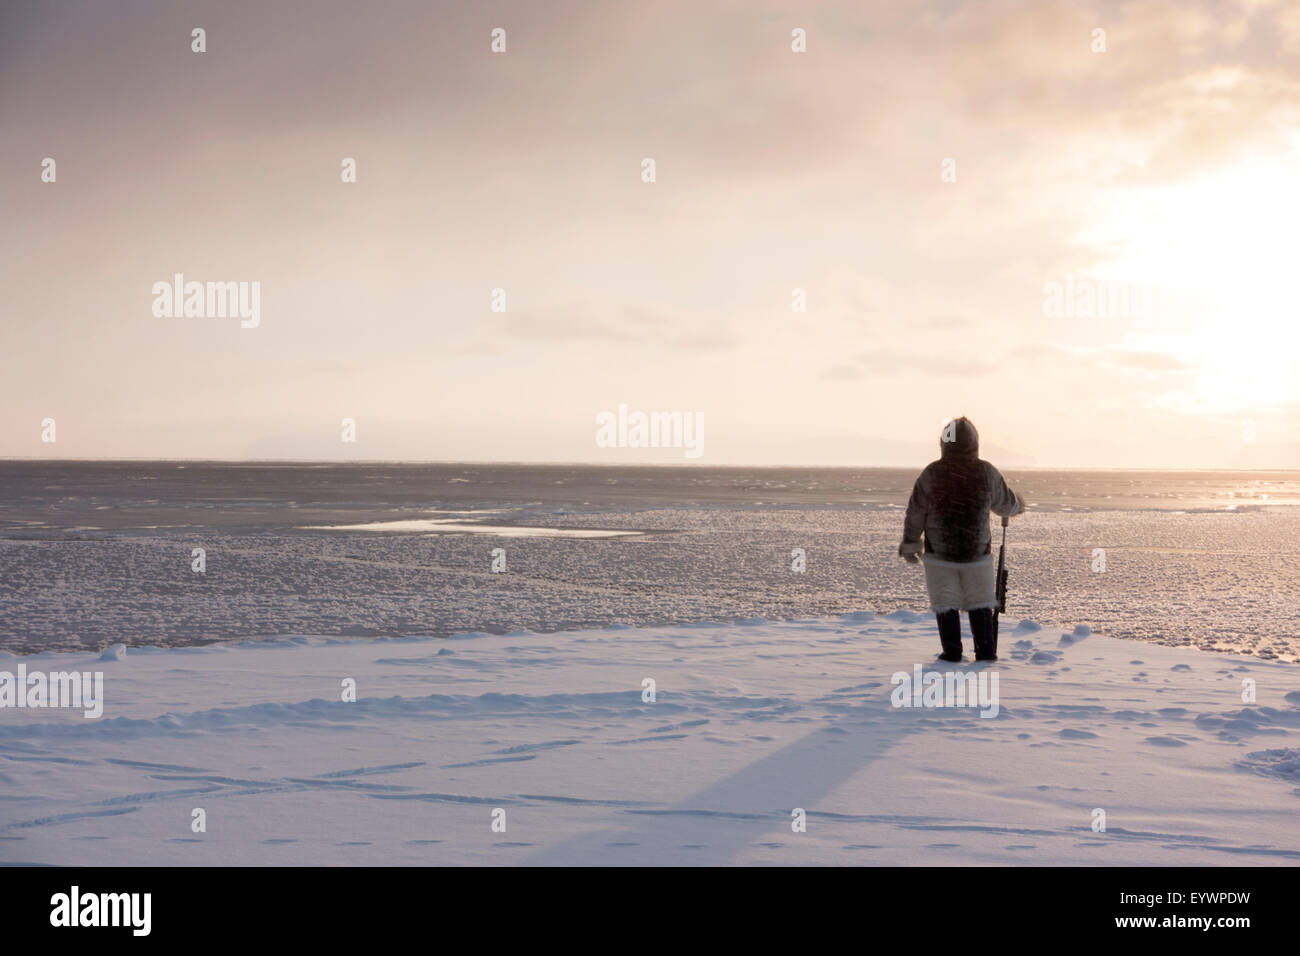 One of the last remaining Inughuit subsistence hunters, Naimanngitsoq Kristiansen, Greenland, Denmark - Stock Image